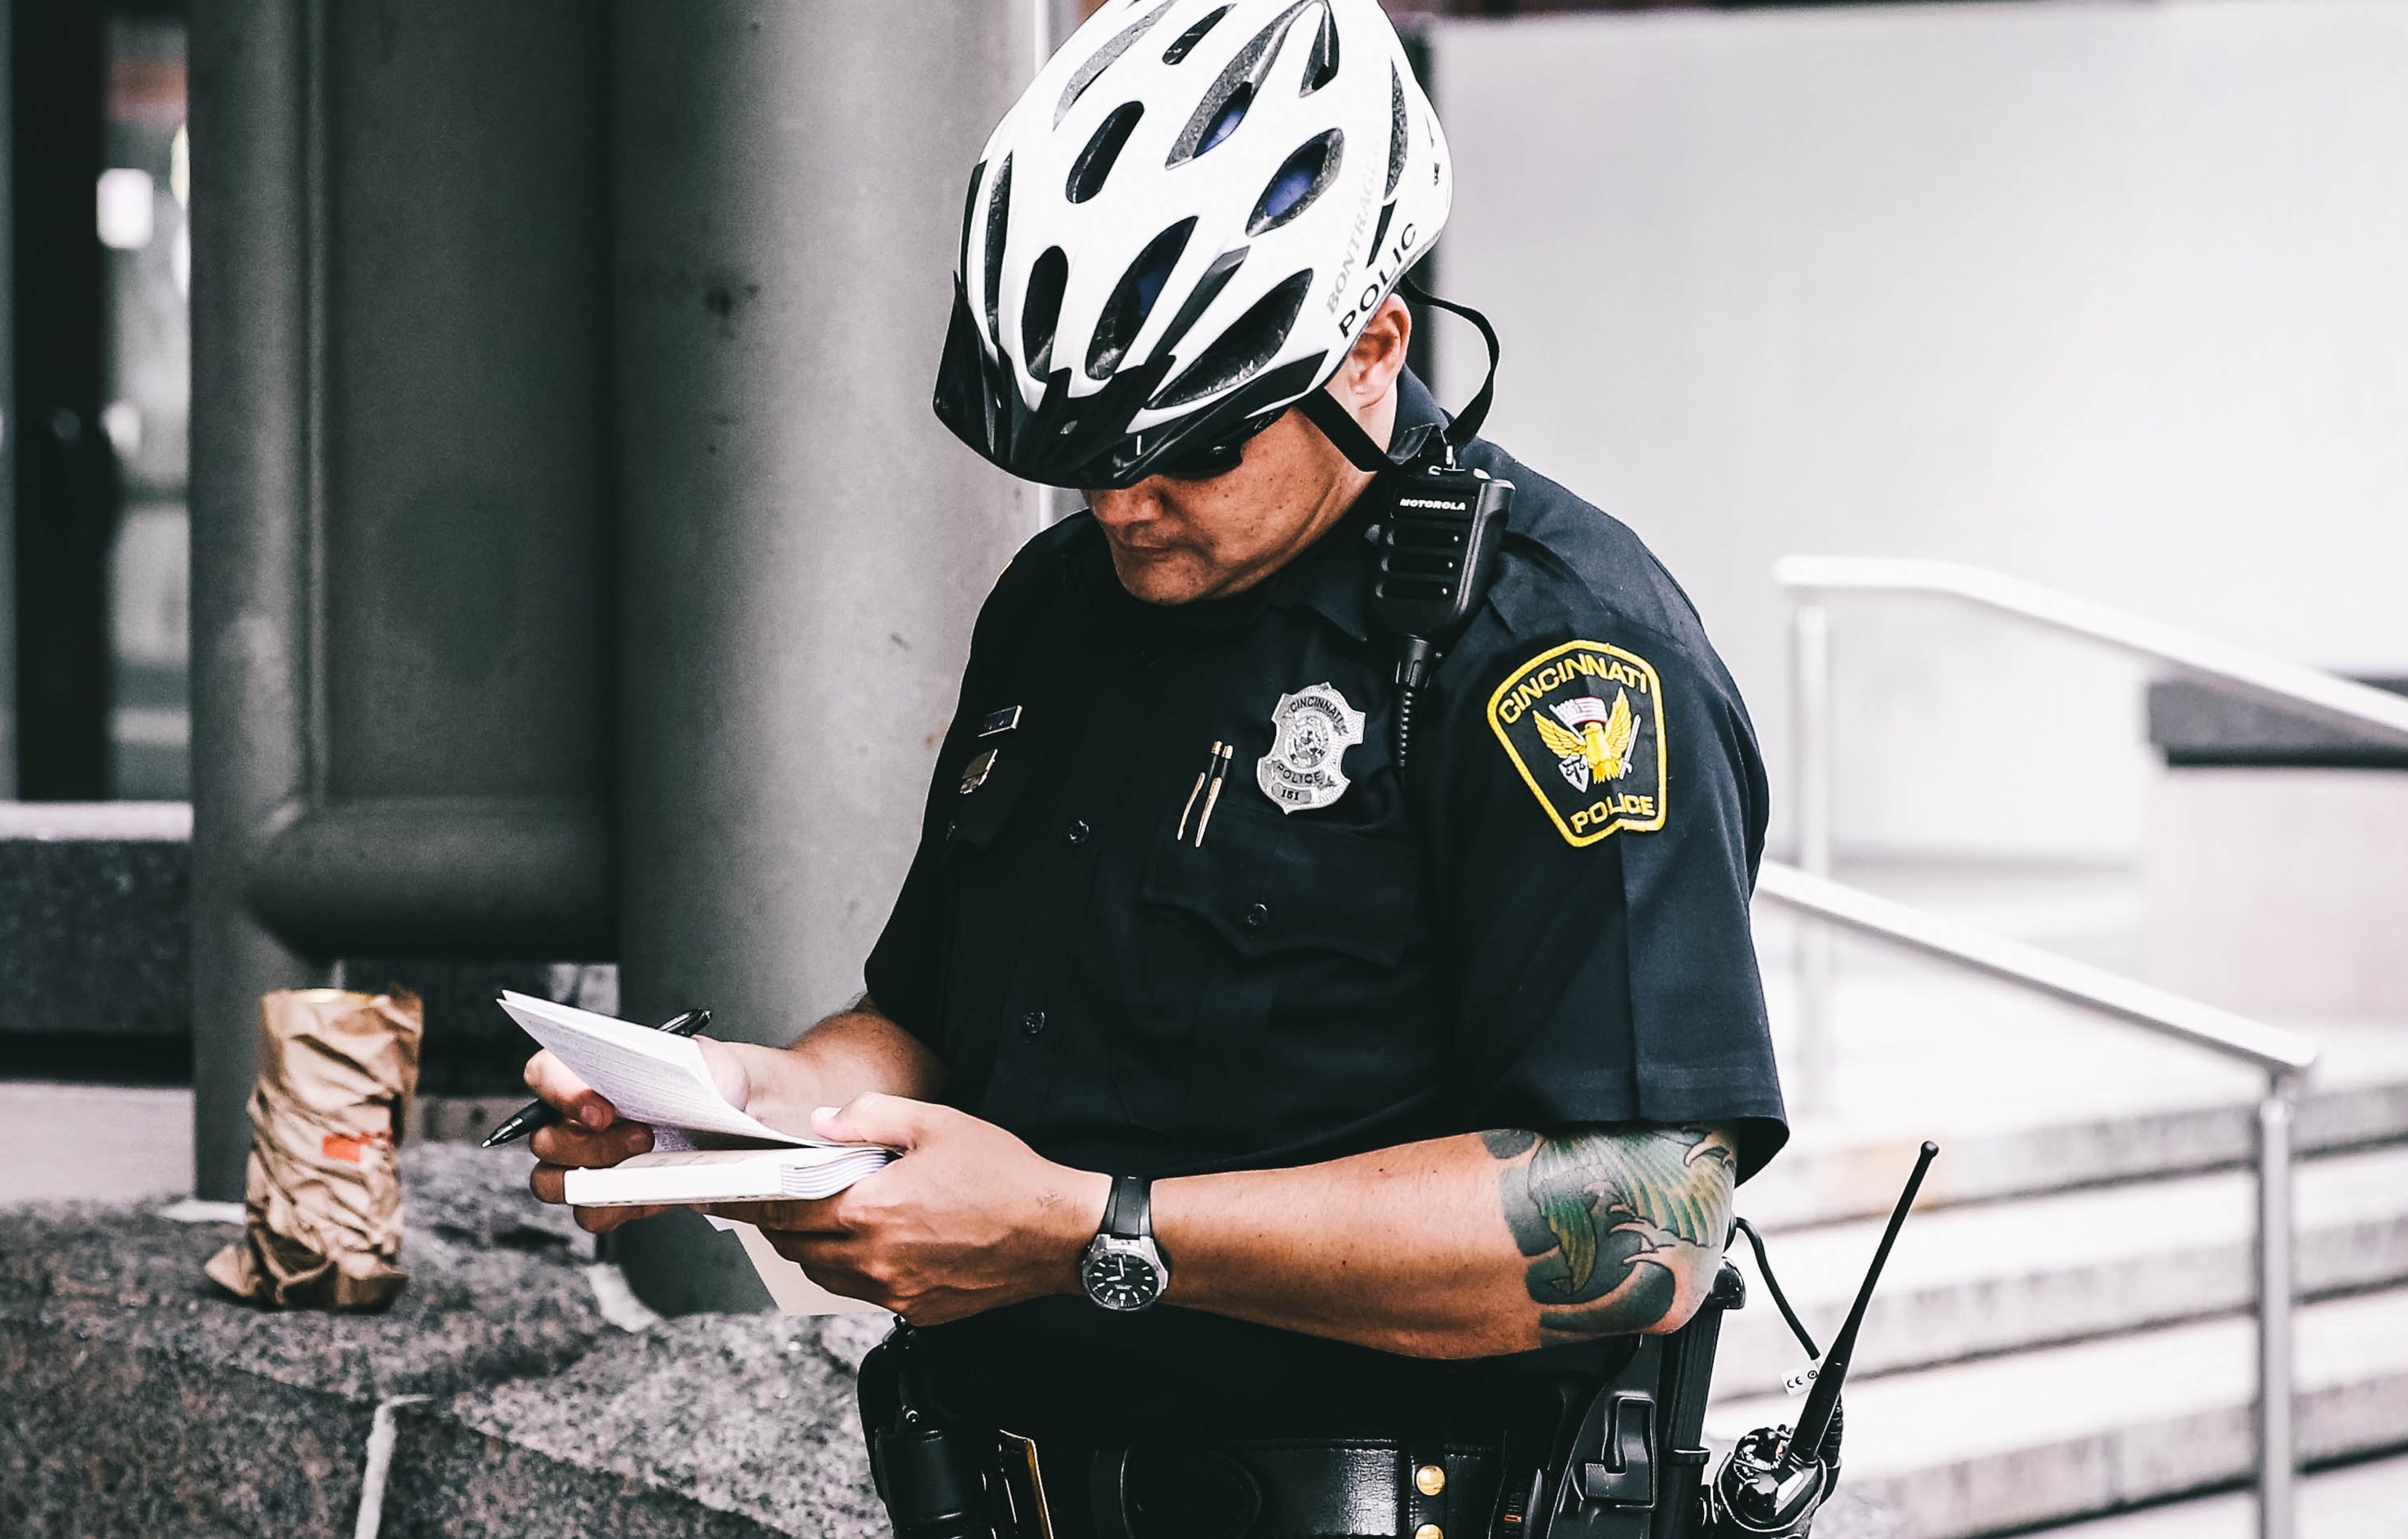 Police officer holding notebook and wearing bicycling helmet.